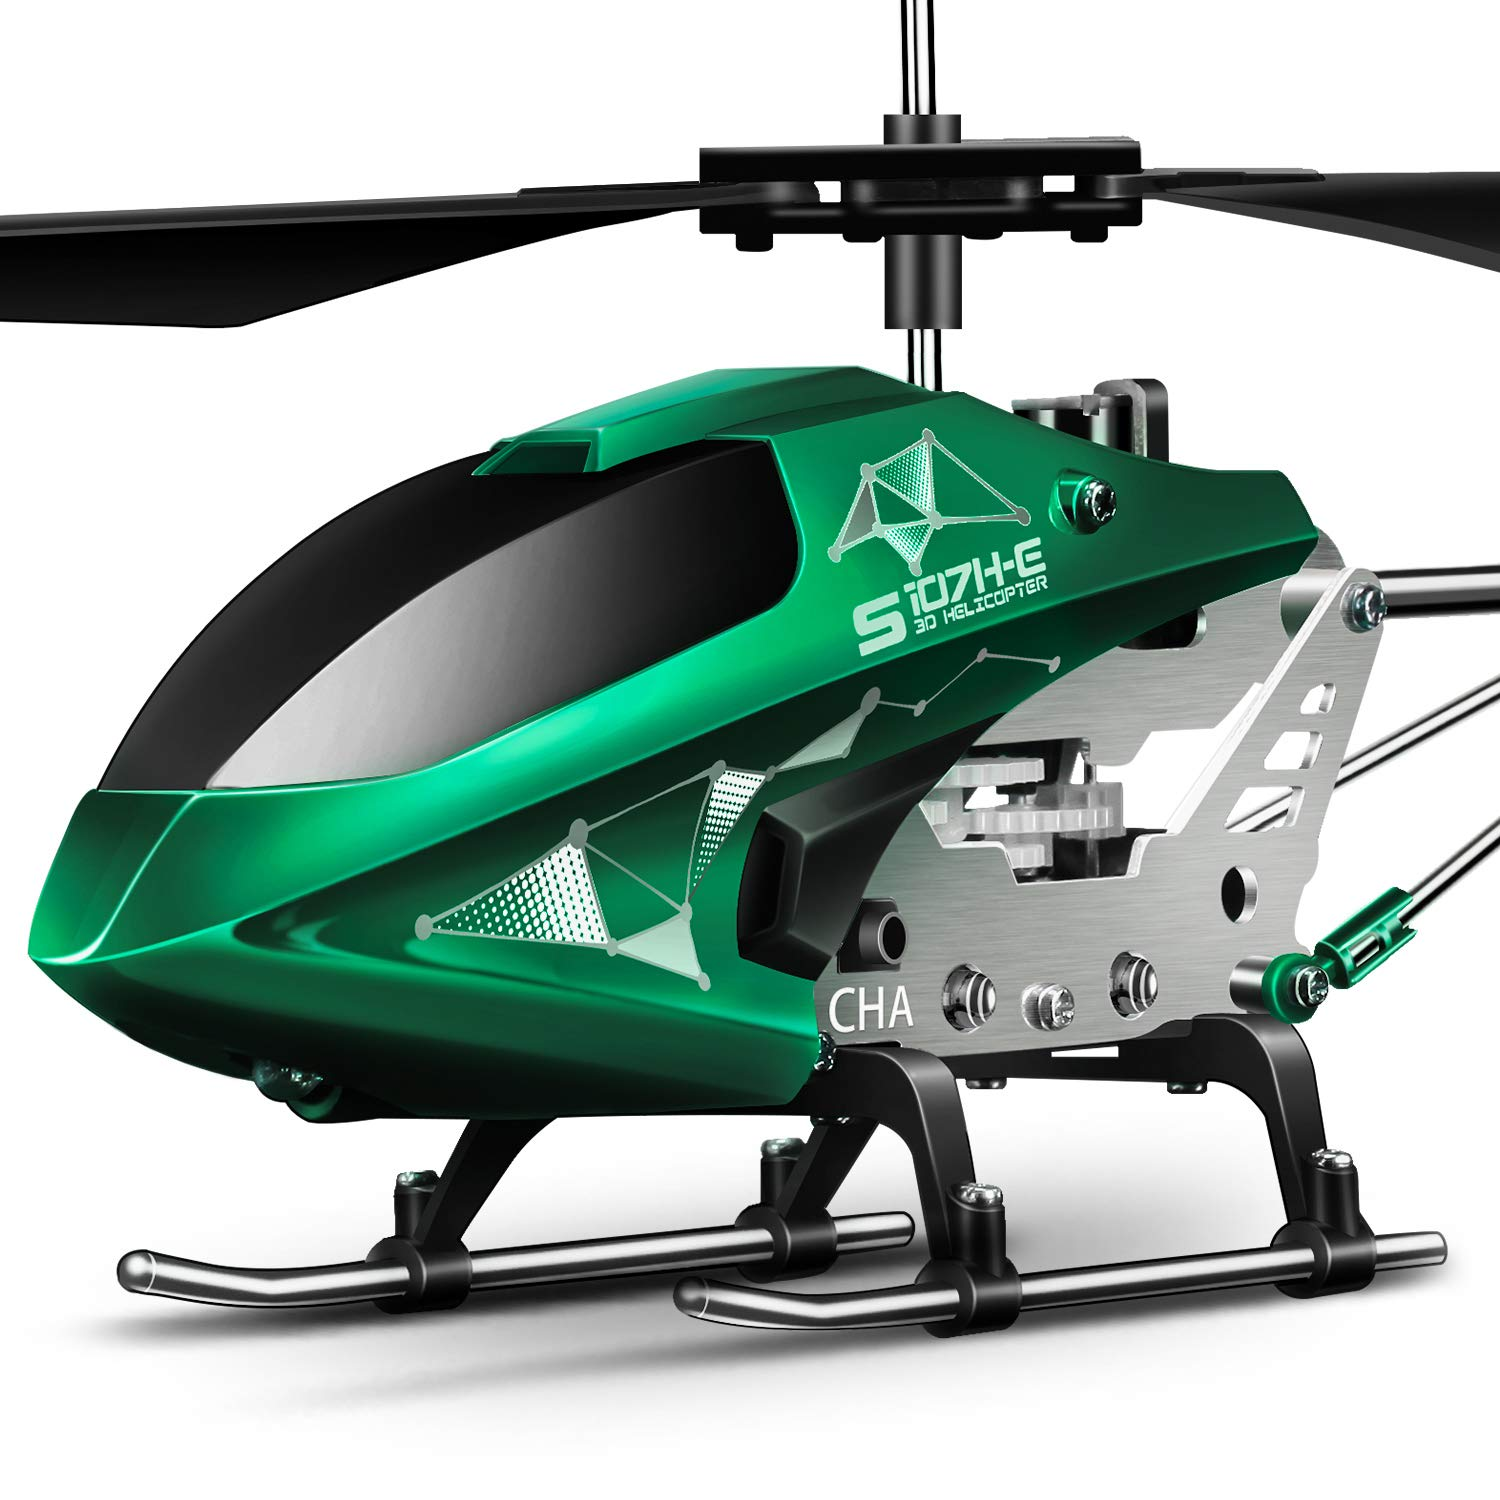 Helicopter Aircraft Altitude Stabilizer Beginners